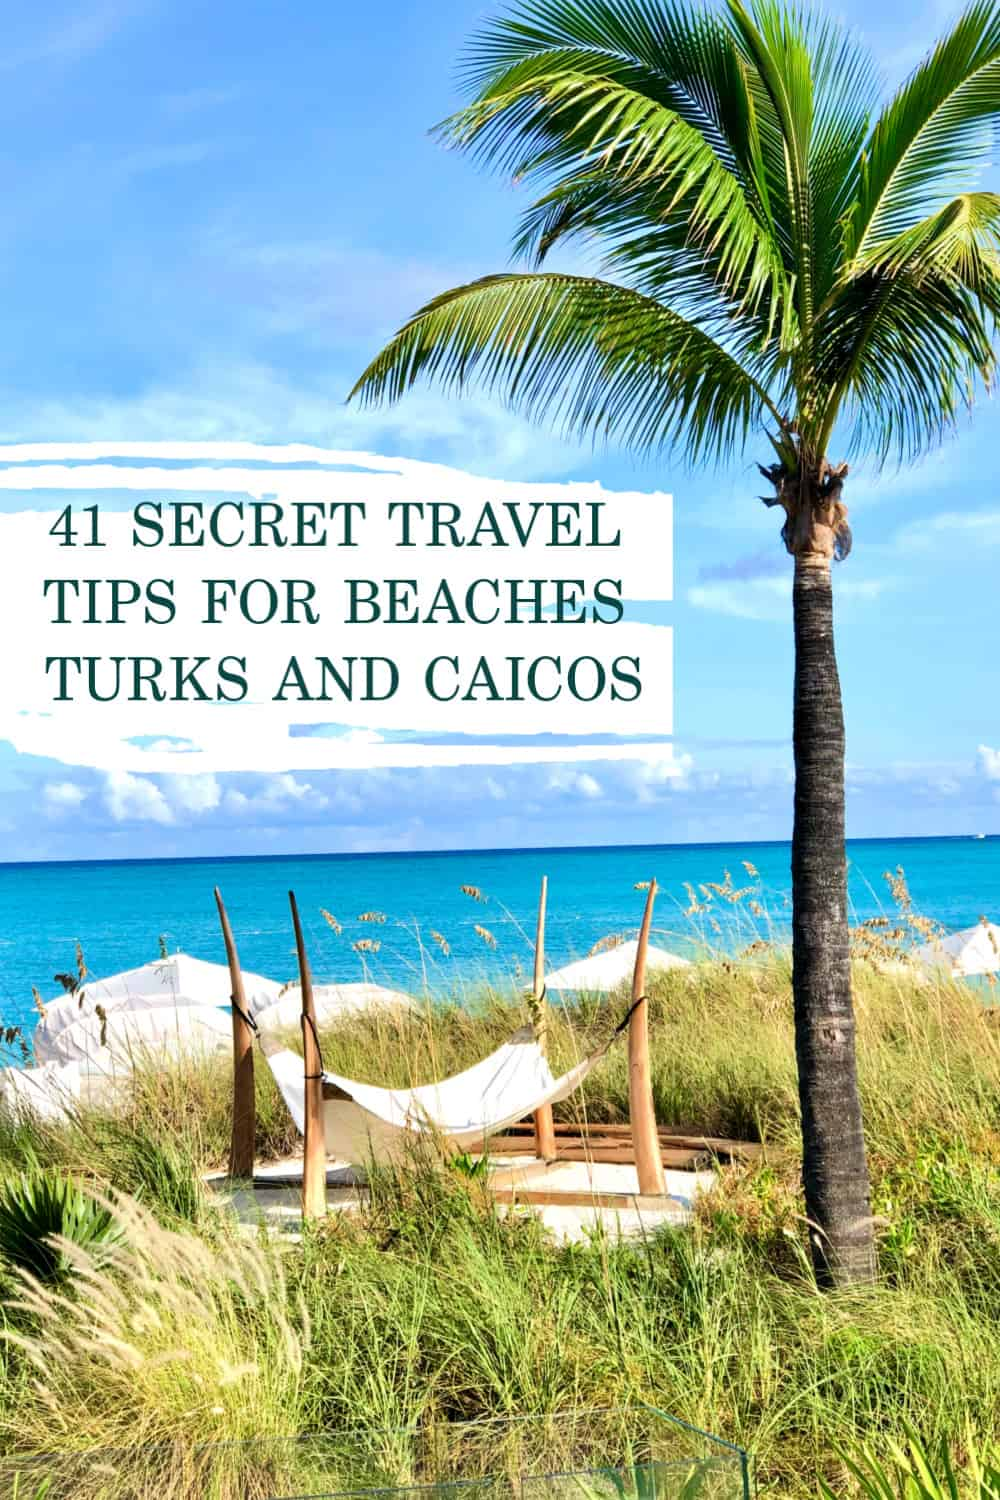 41 Travel Tips for Beaches Turks and Caicos